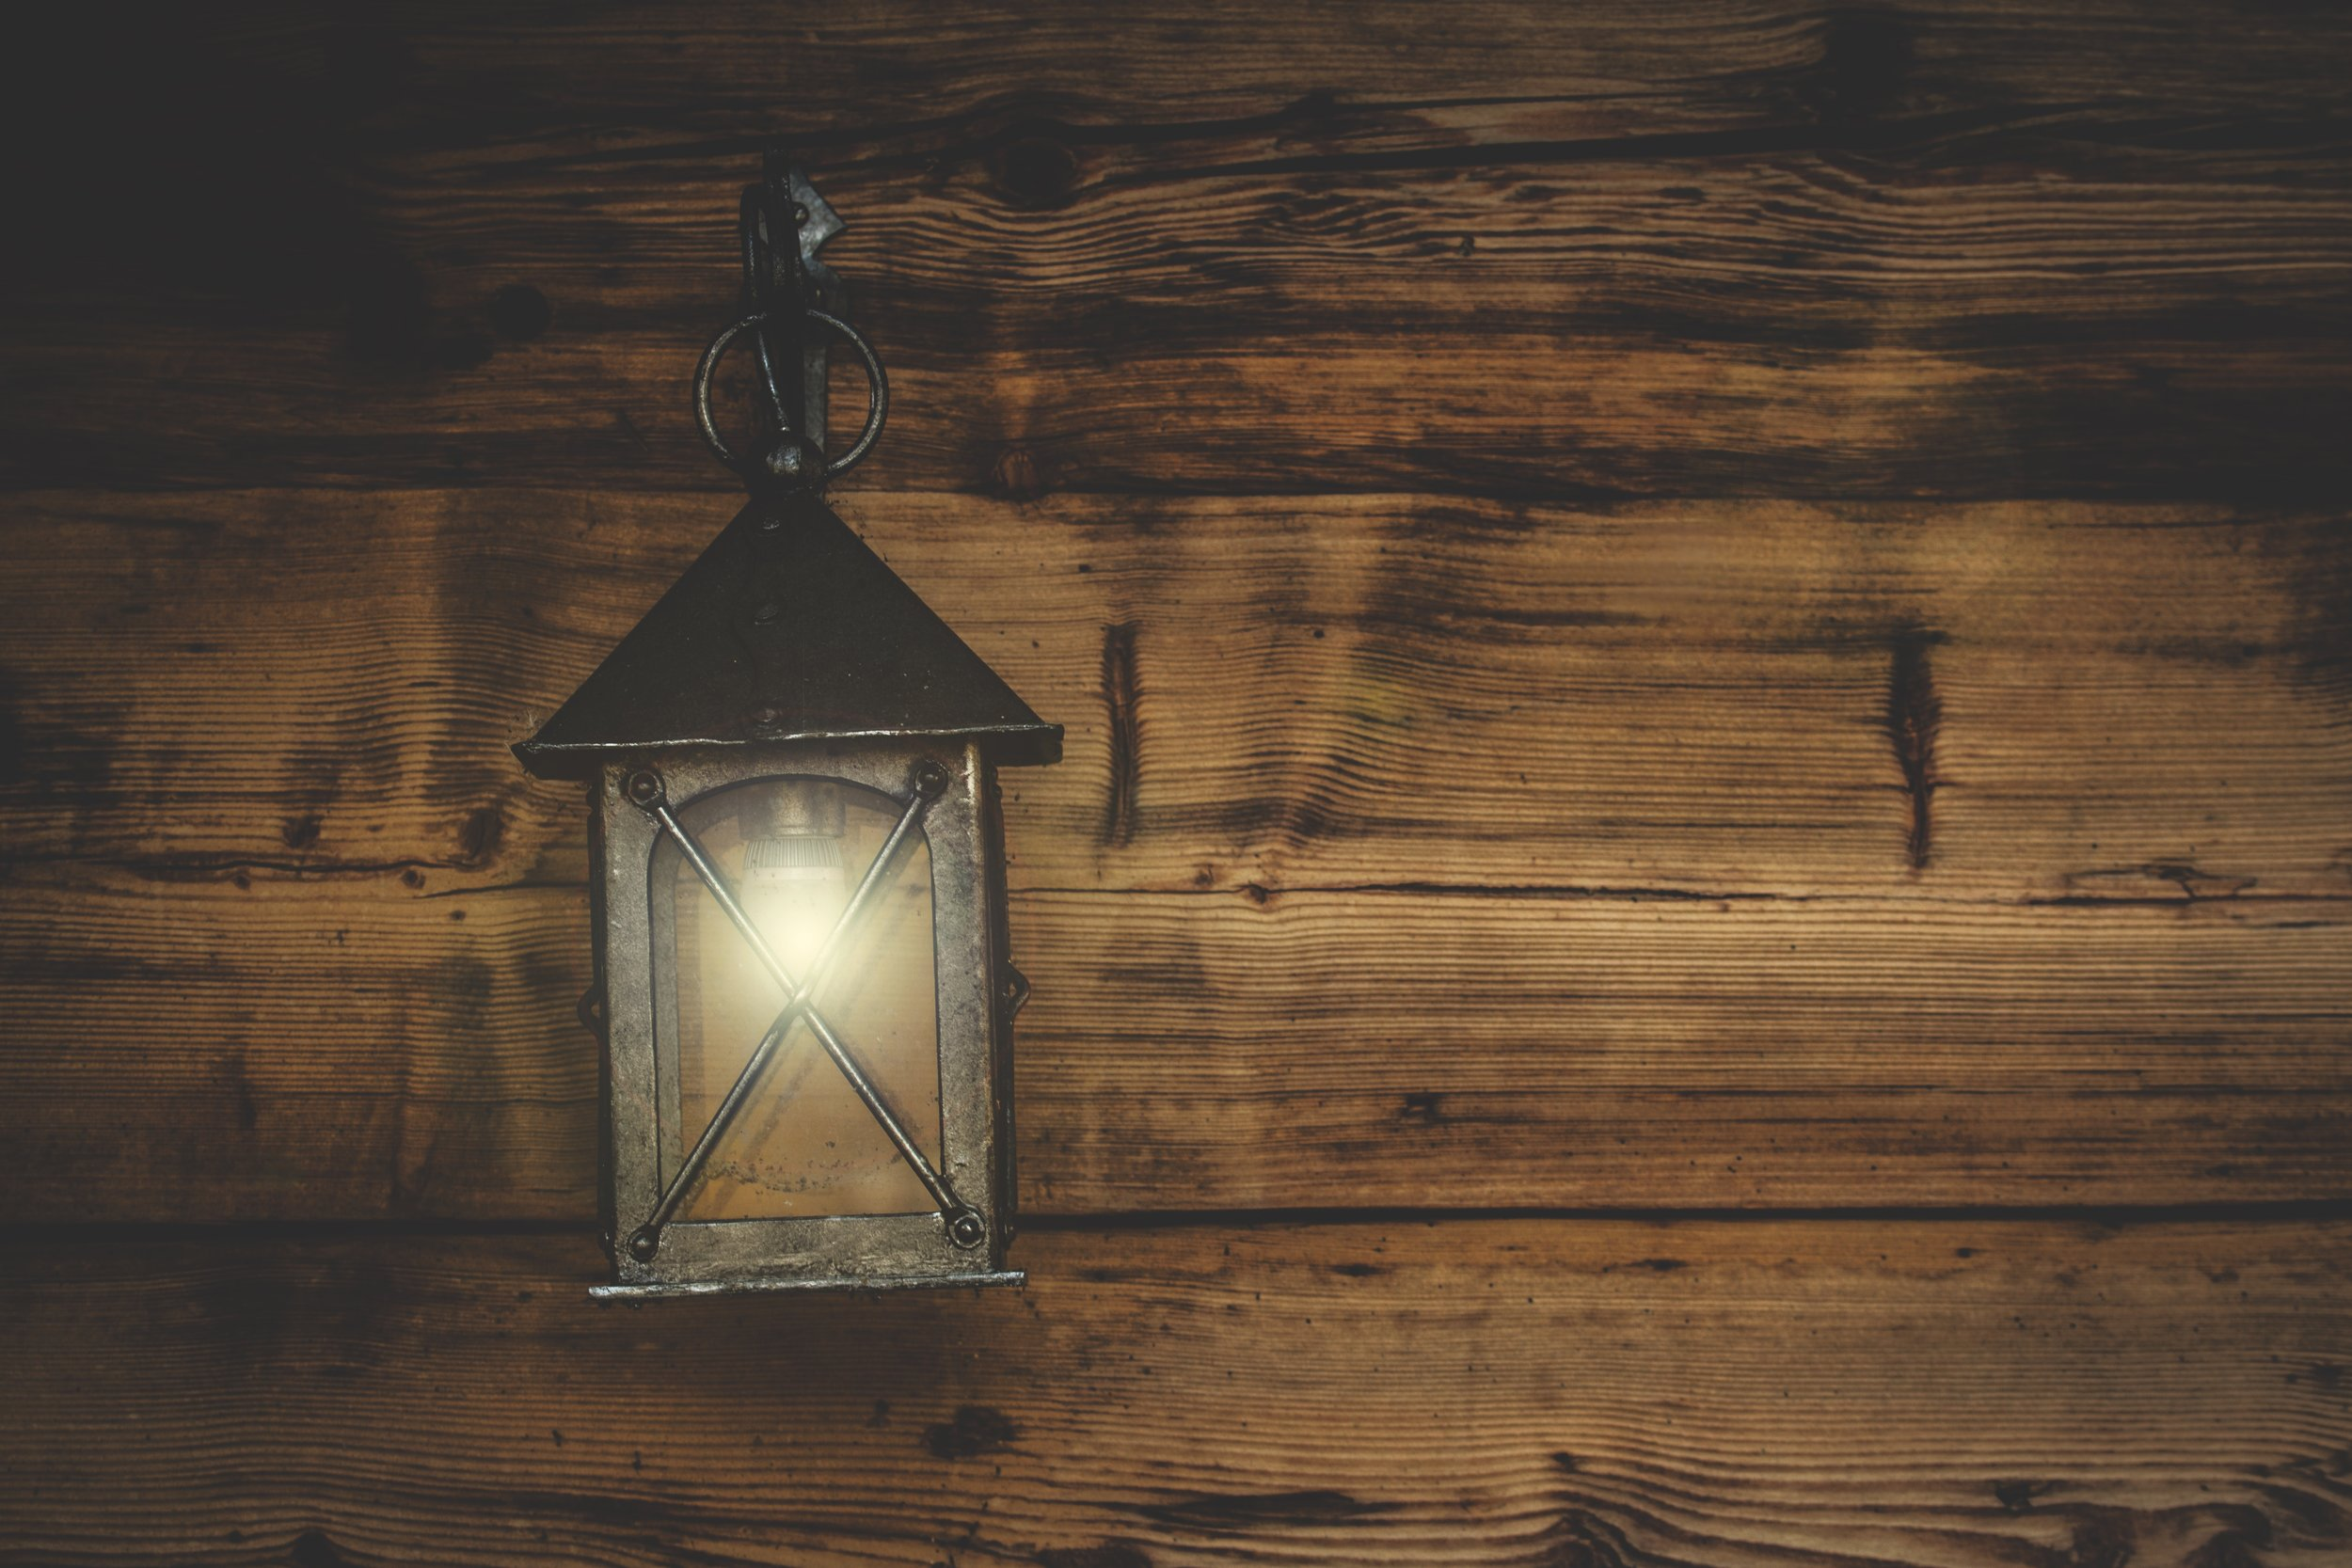 lantern-light-rustic-241821.jpg